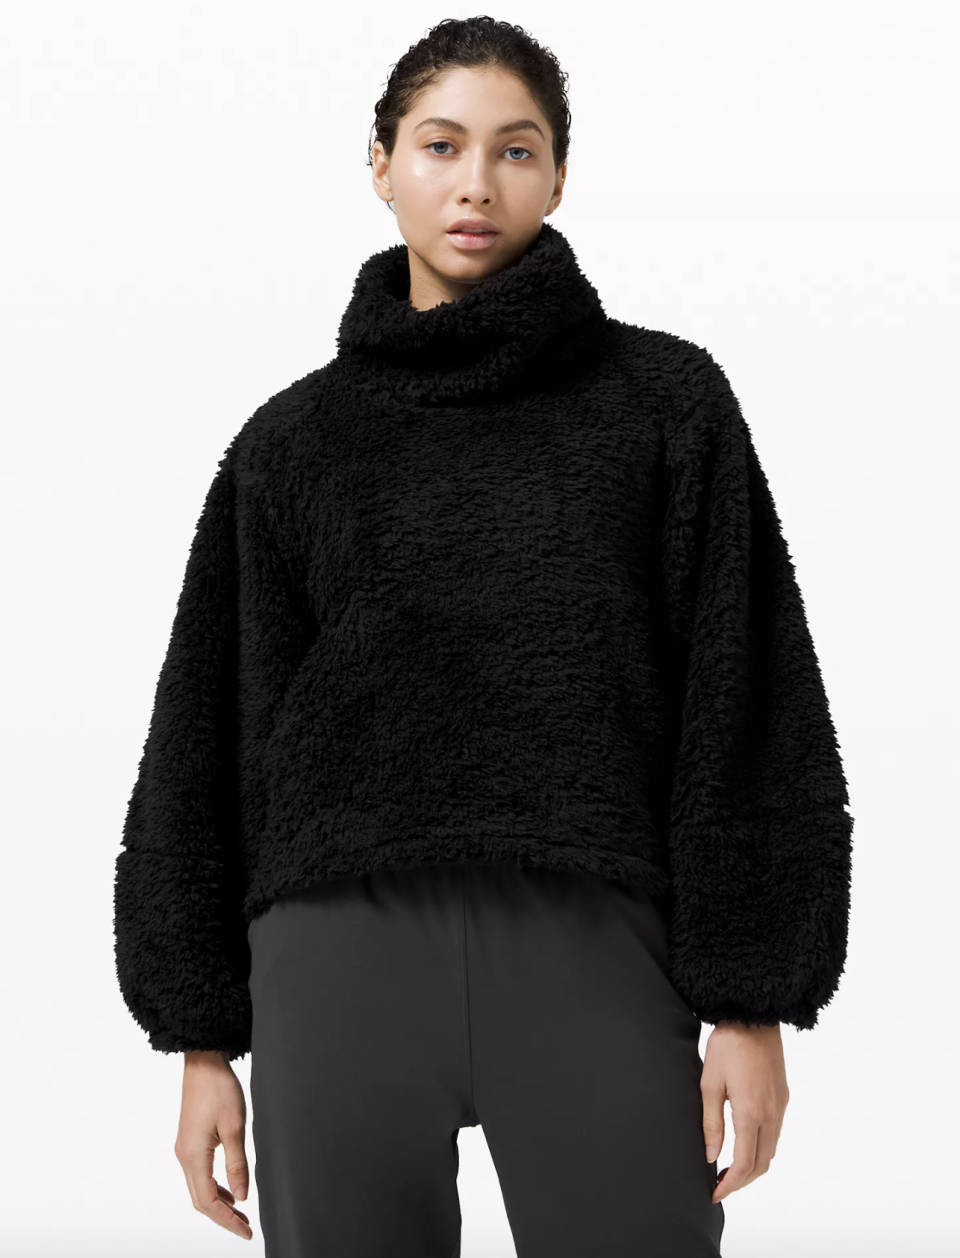 Warm Restore Sherpa Pullover - $69 (originally $154).